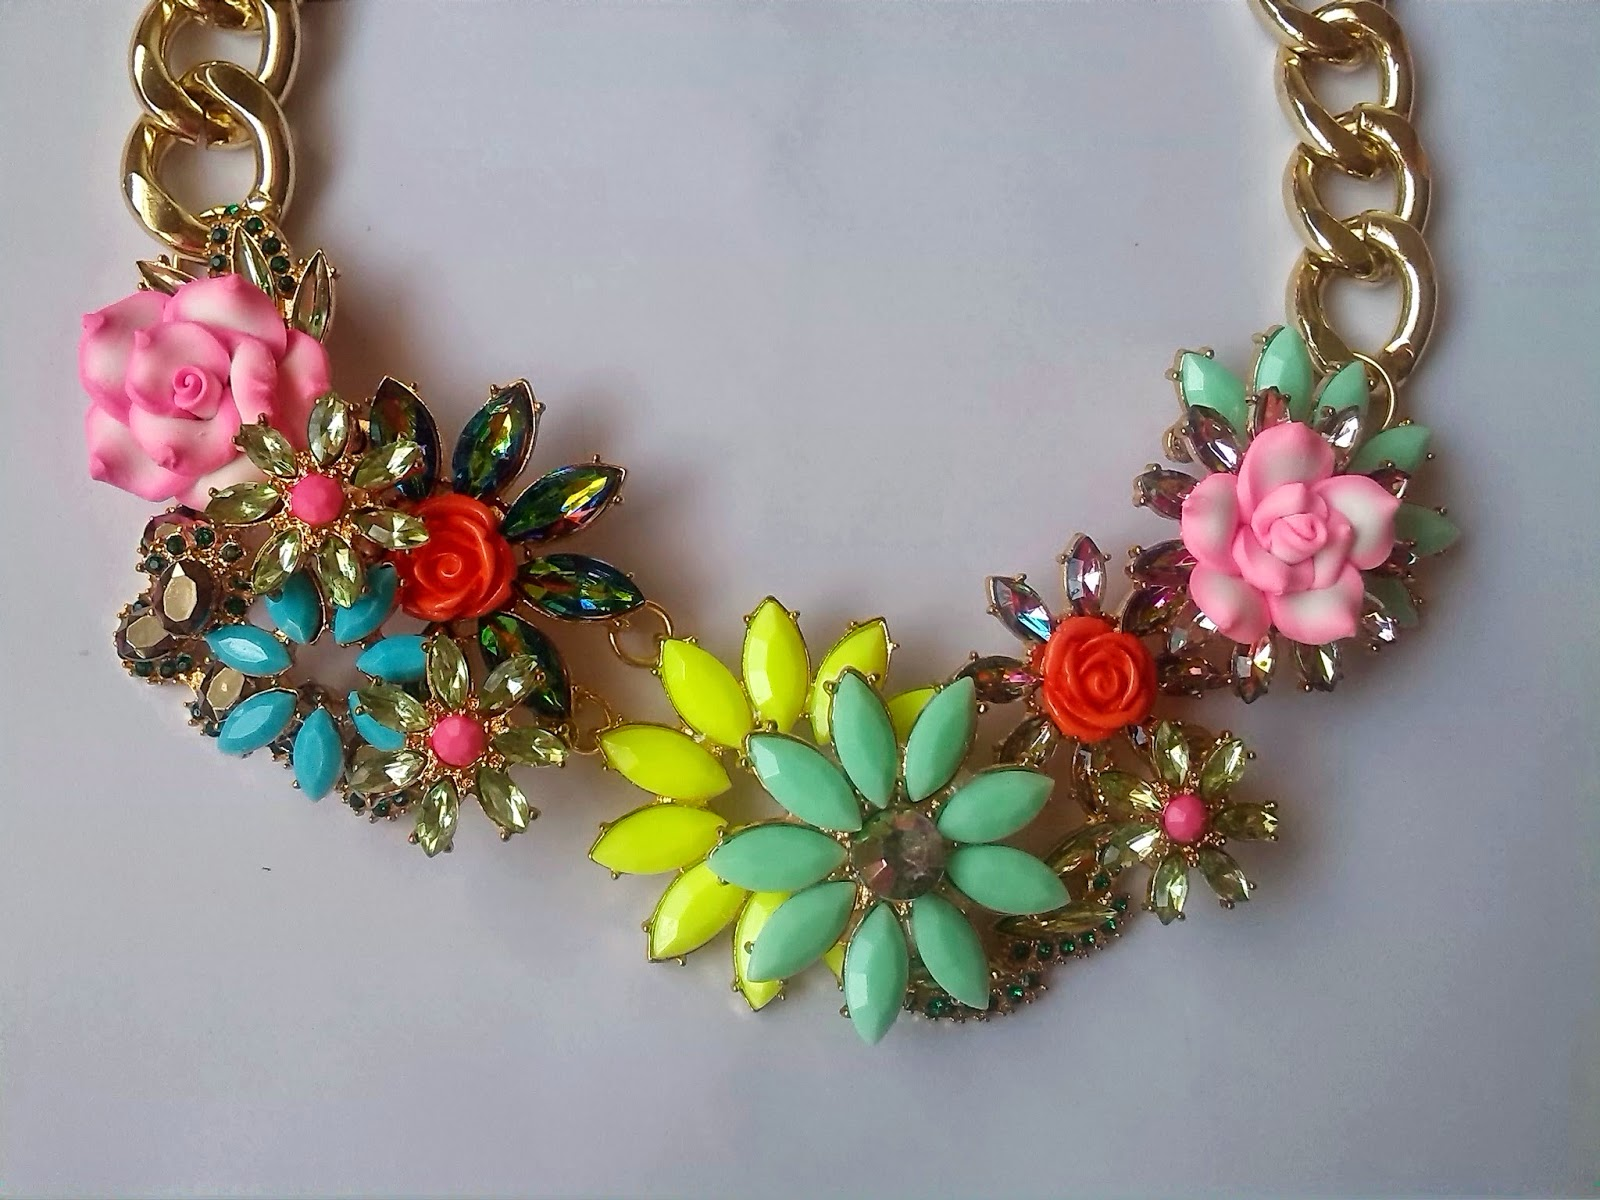 9a62f038cd20 Gangas Express  Collares de Aliexpress (Review + sugerencia)